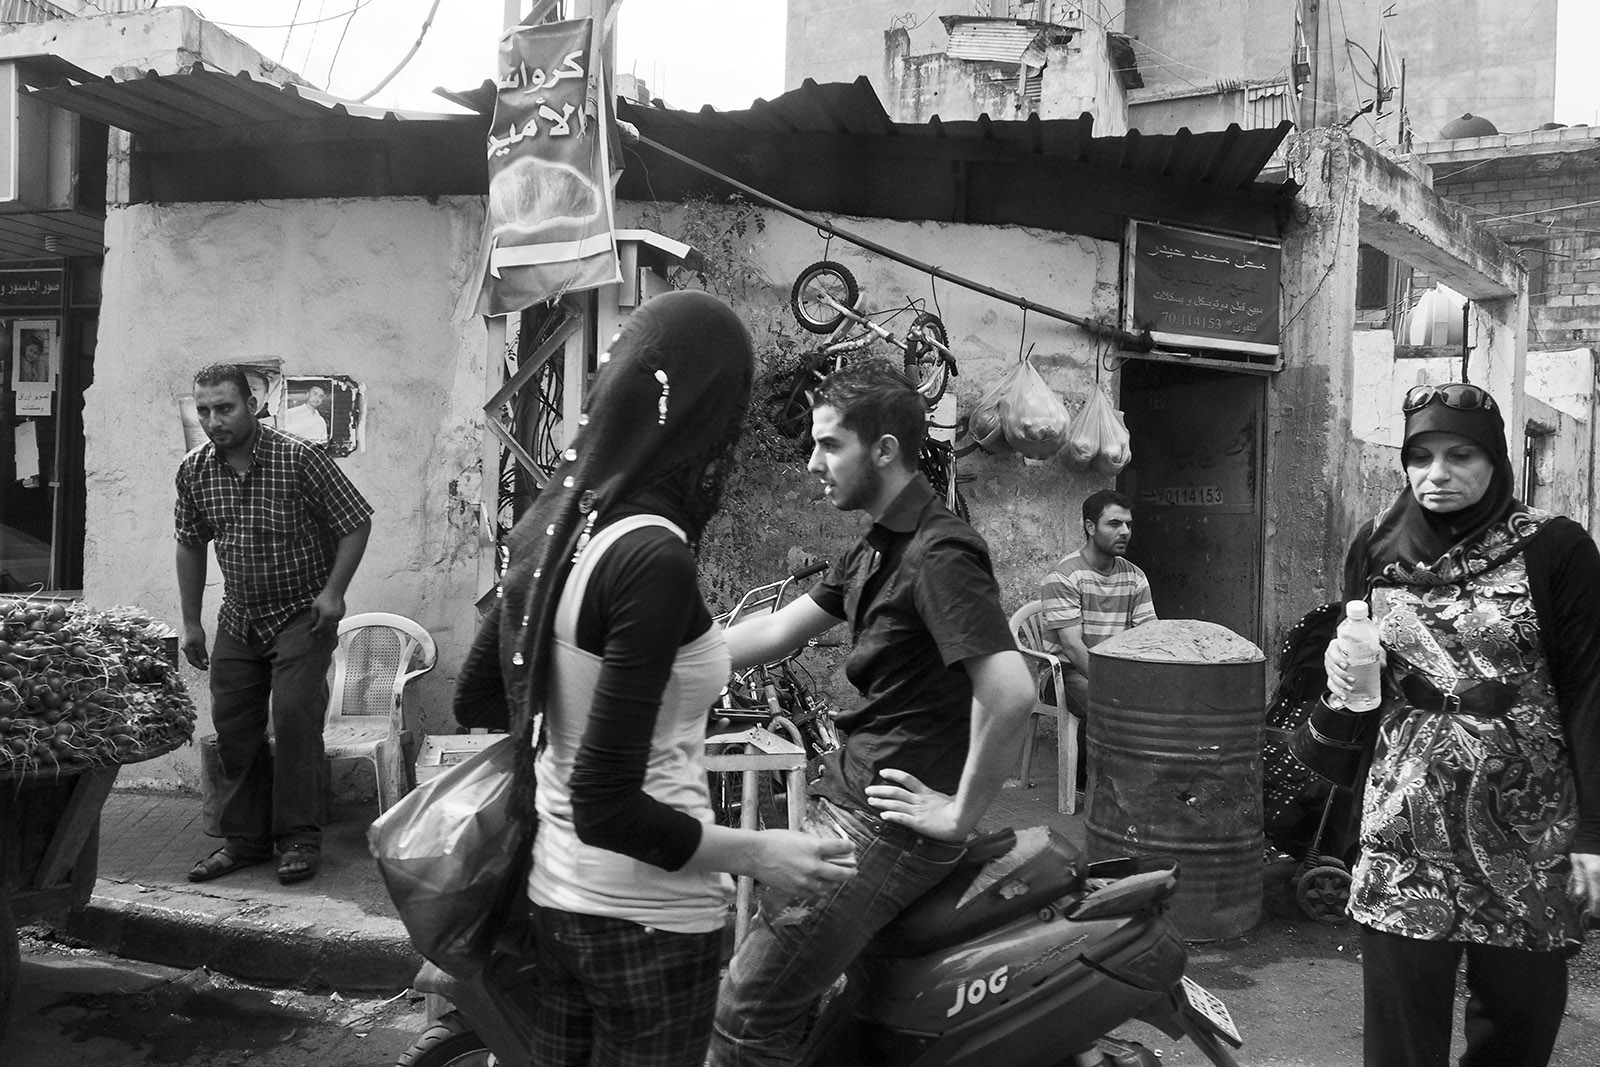 Street scene in the suburb of Dahieh, a Hezbollah stronghold on the outskirts of Beirut, Lebanon, 2012